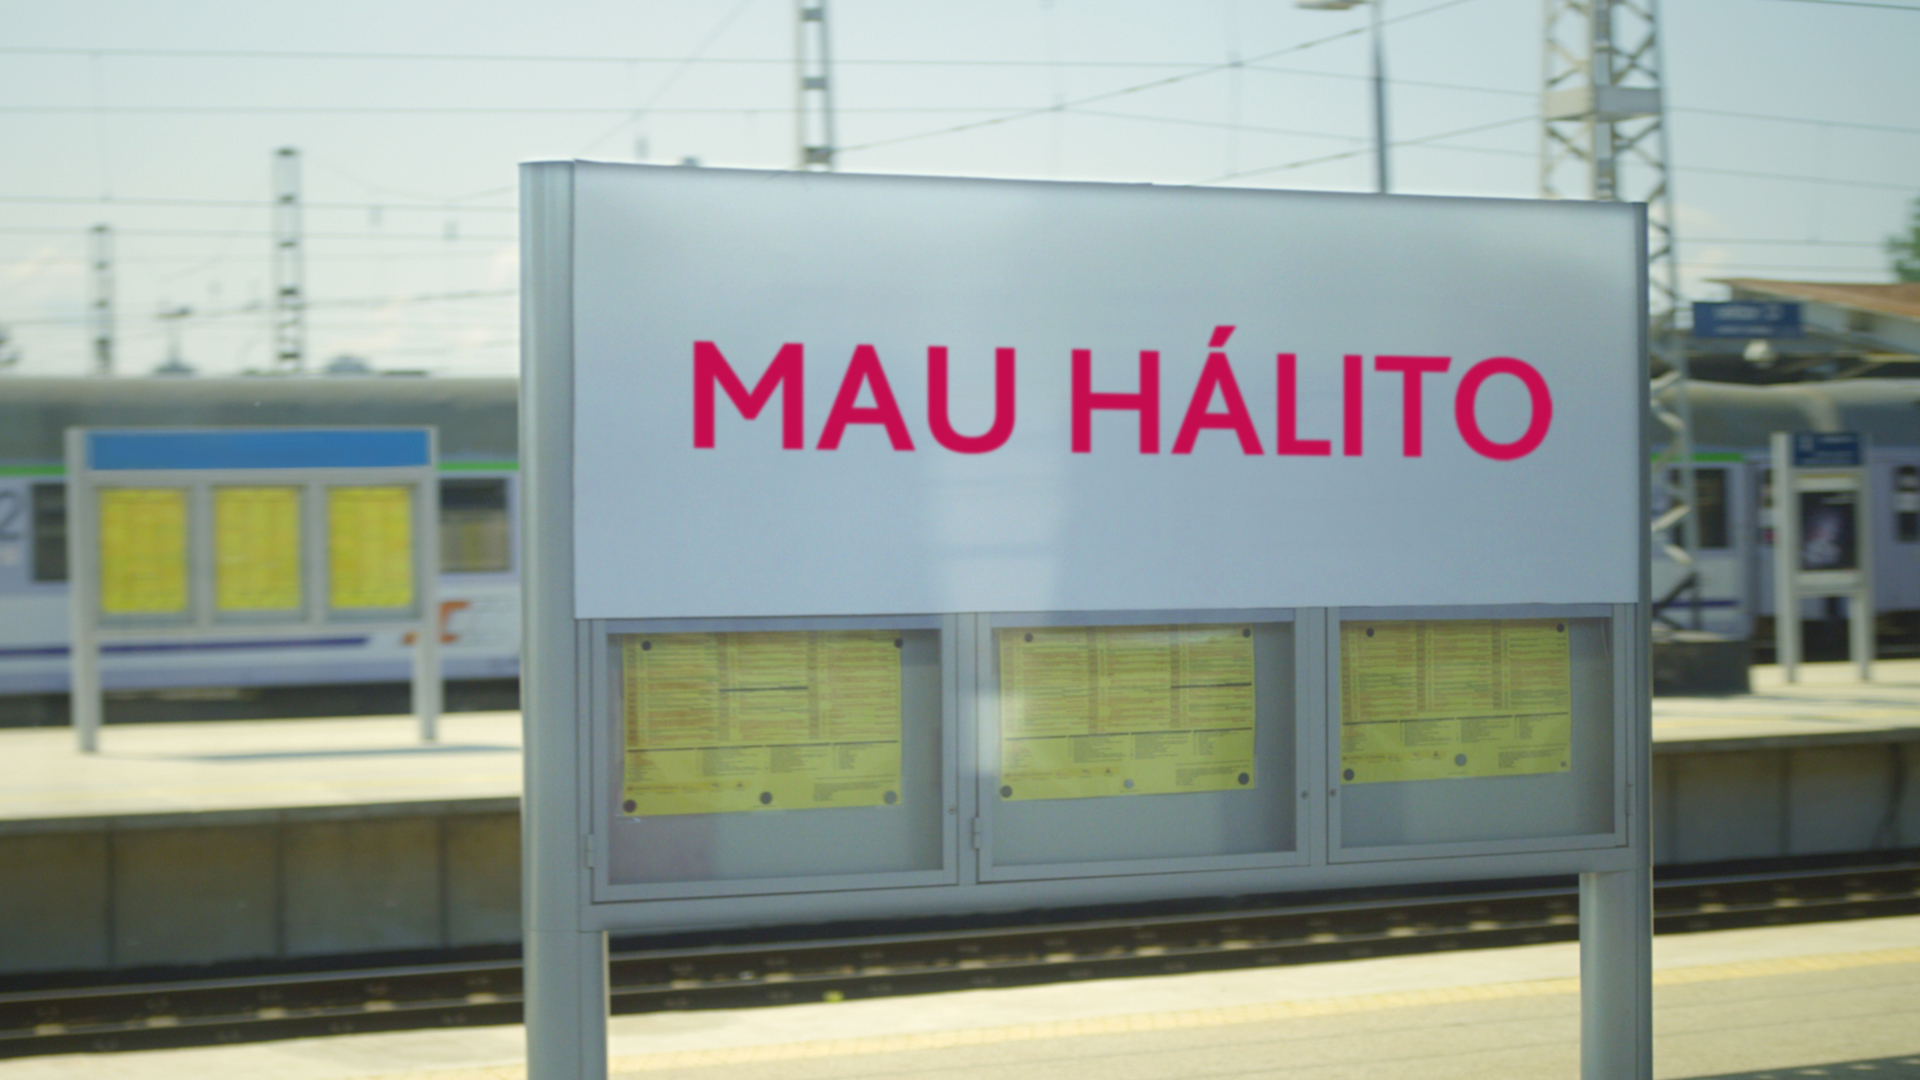 Train station sign with 'Bad breath' written on it